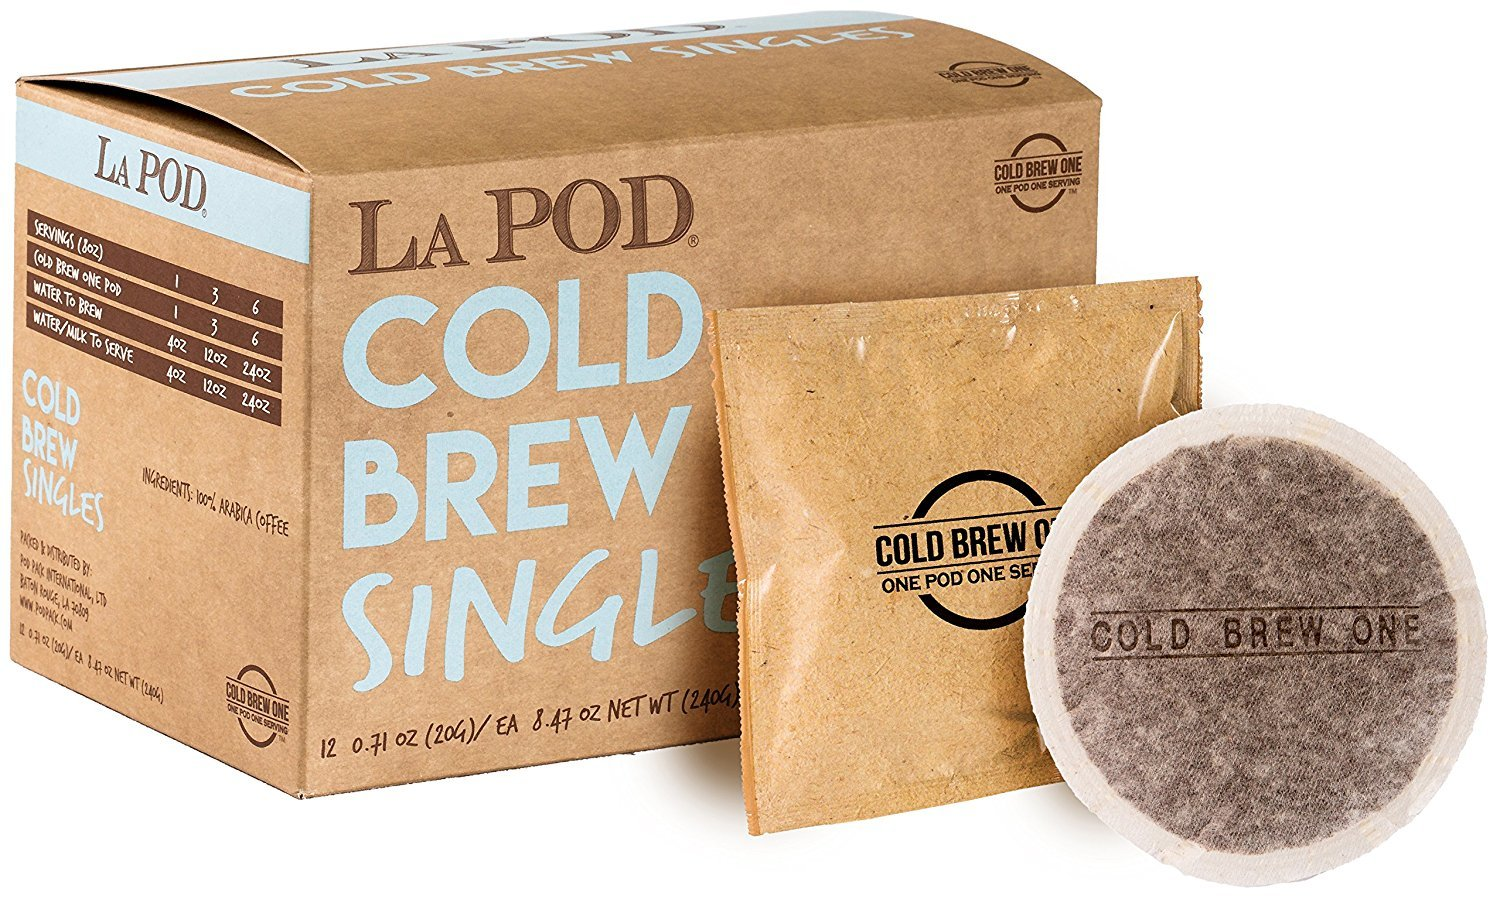 La Pod Cold Brew One Coffee Pods Single Cup Or Batch Brewing Pods